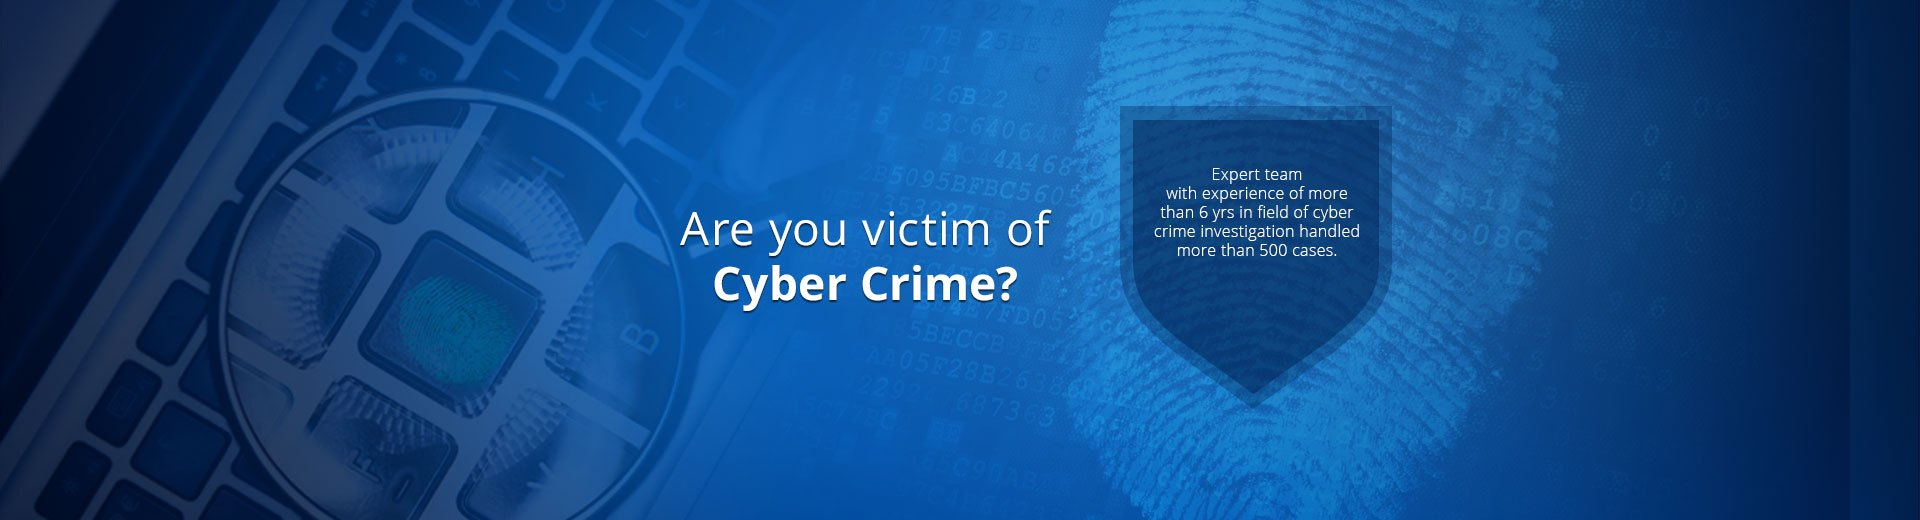 Cyber Security Company in Jaipur, India